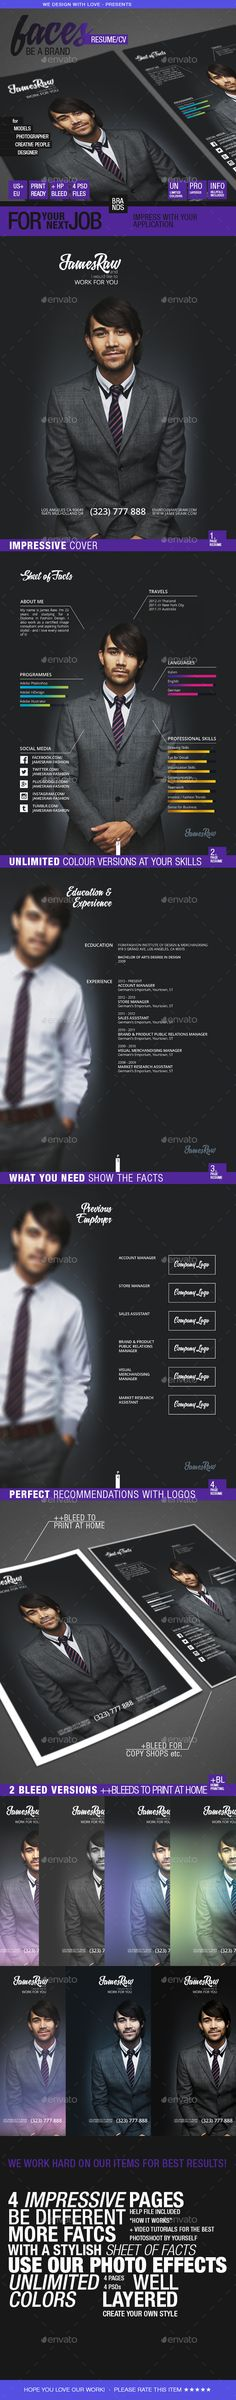 Faces // Resume 4 Pages - Be a Brand — Photoshop PSD #collage #perfect resume • Available here → https://graphicriver.net/item/faces-resume-4-pages-be-a-brand/11654292?ref=pxcr